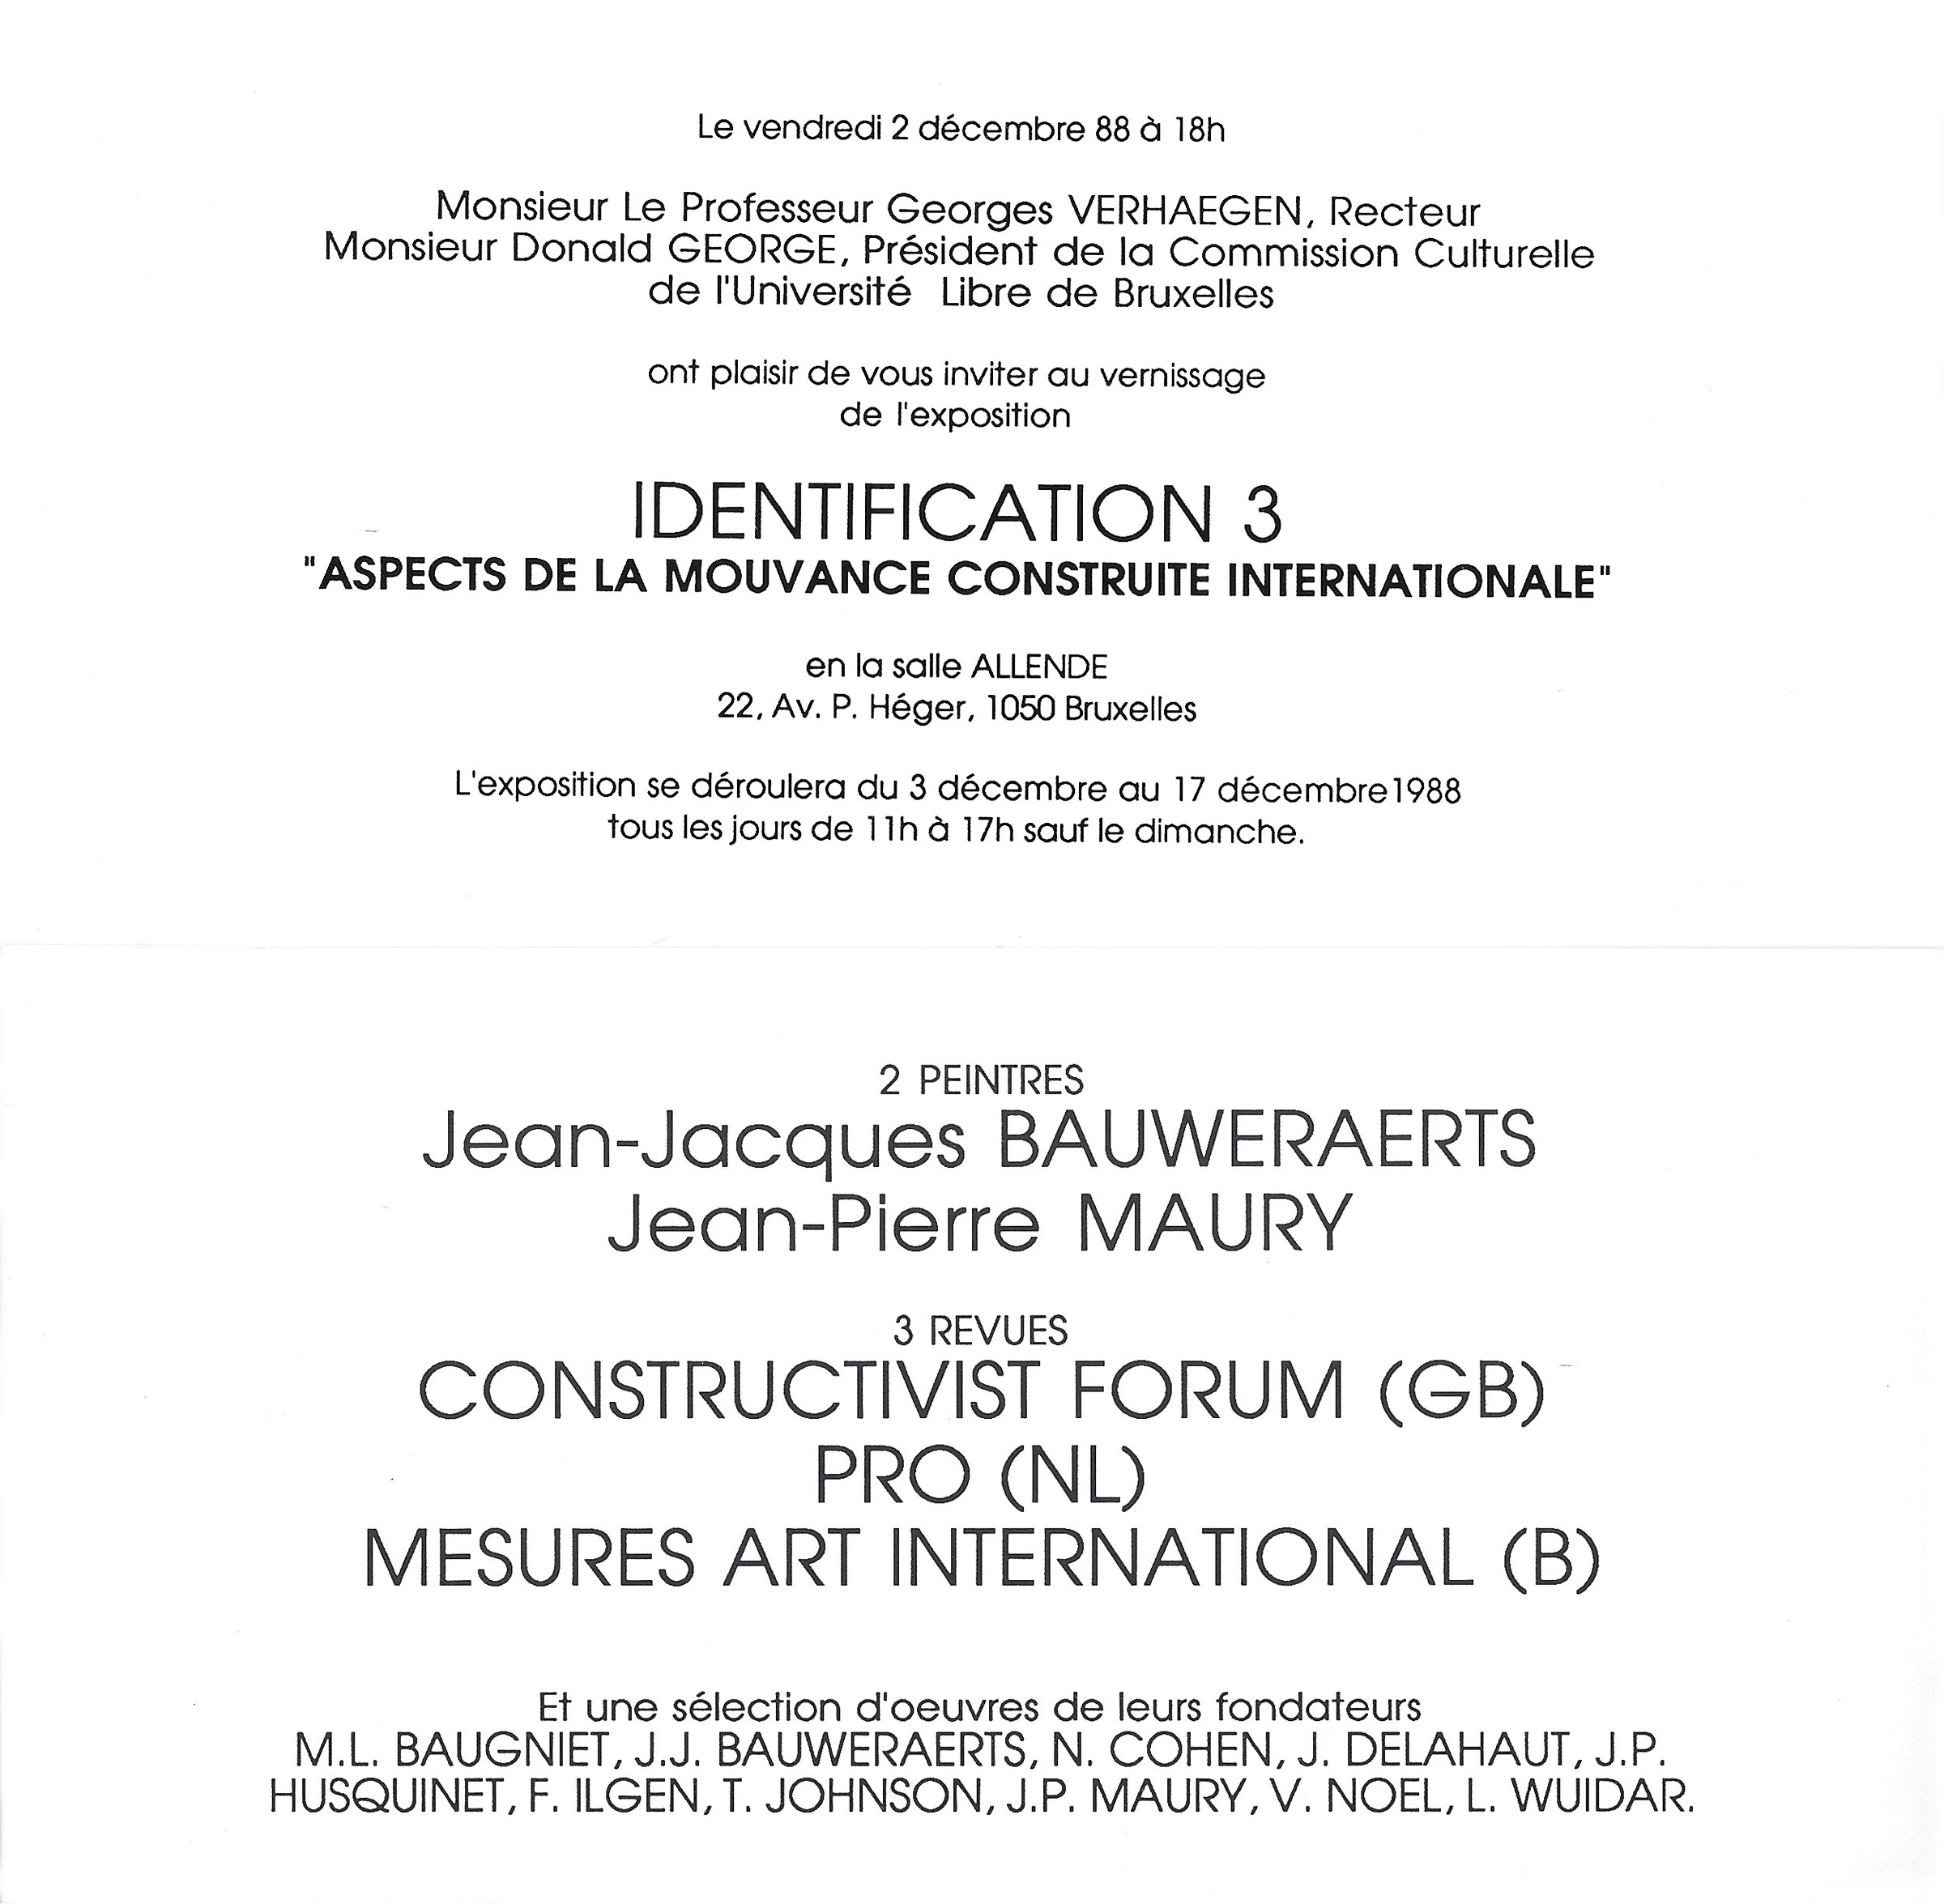 1988 Identification 3 Aspects de la Mouvance Construite Internationale   Université Libre de Bruxelles, B